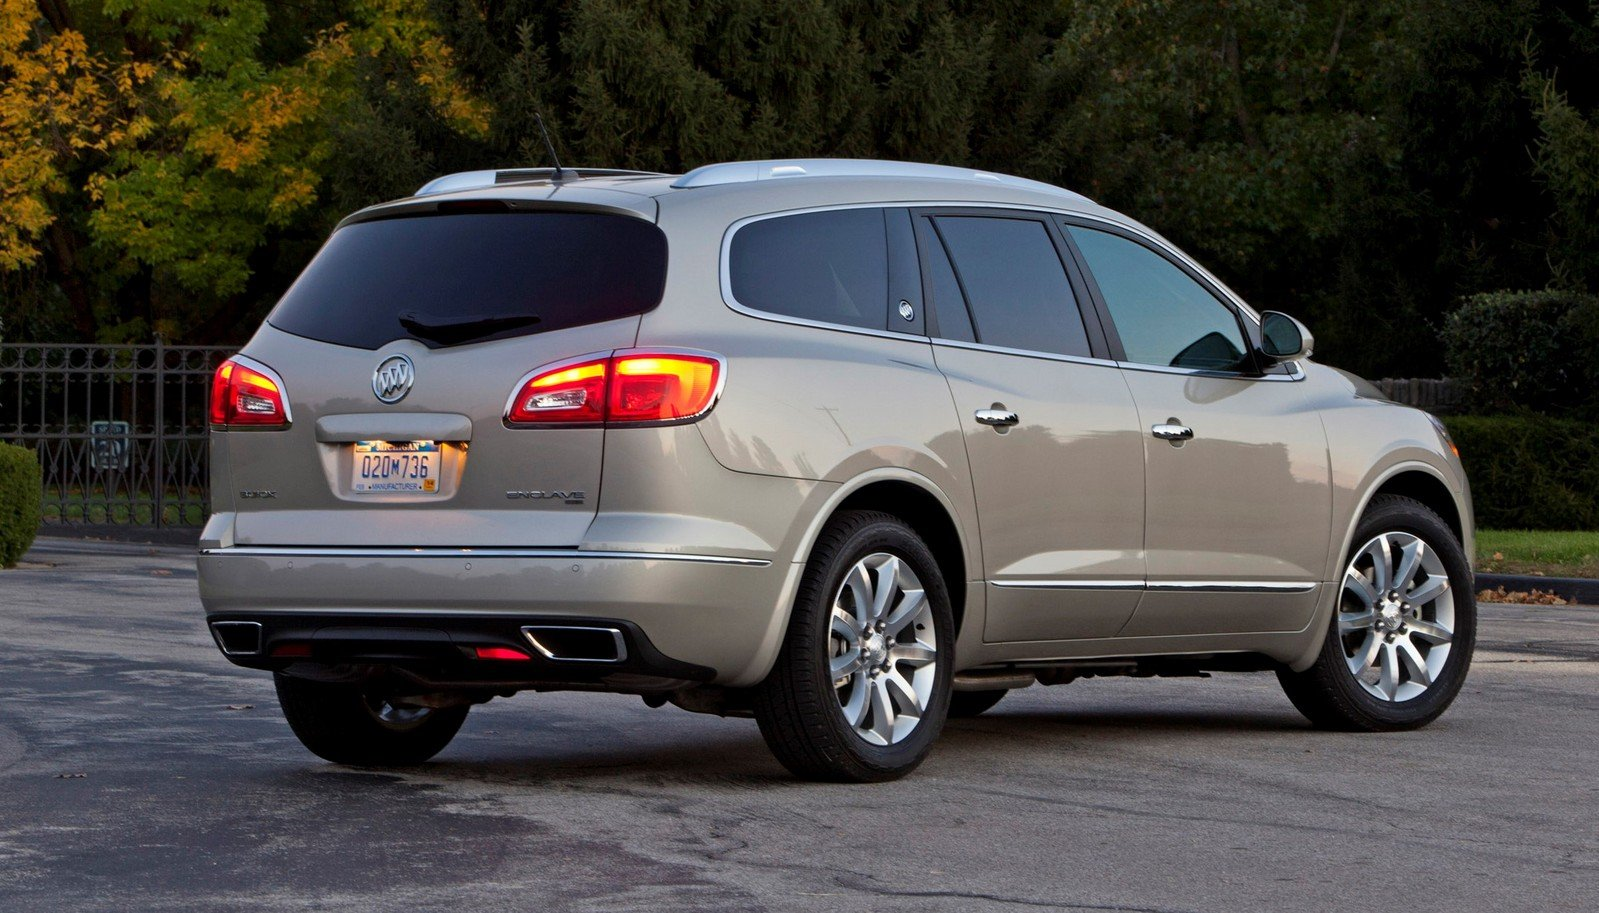 2014 buick enclave vs 2014 acura autos post. Black Bedroom Furniture Sets. Home Design Ideas